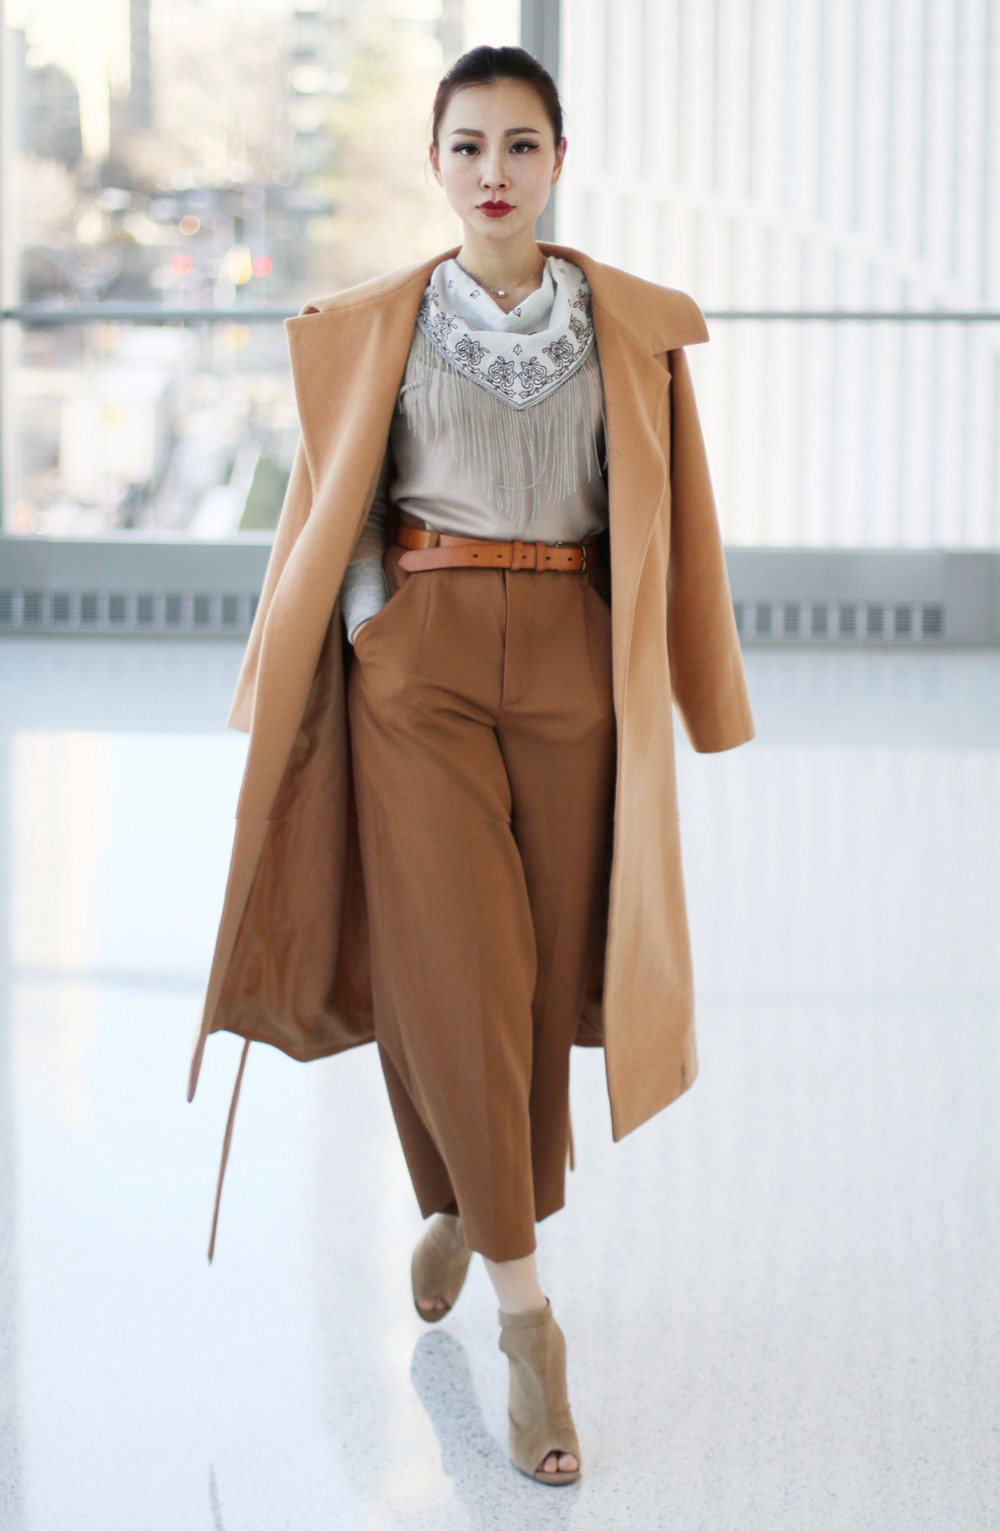 luxe camel outfit.jpg